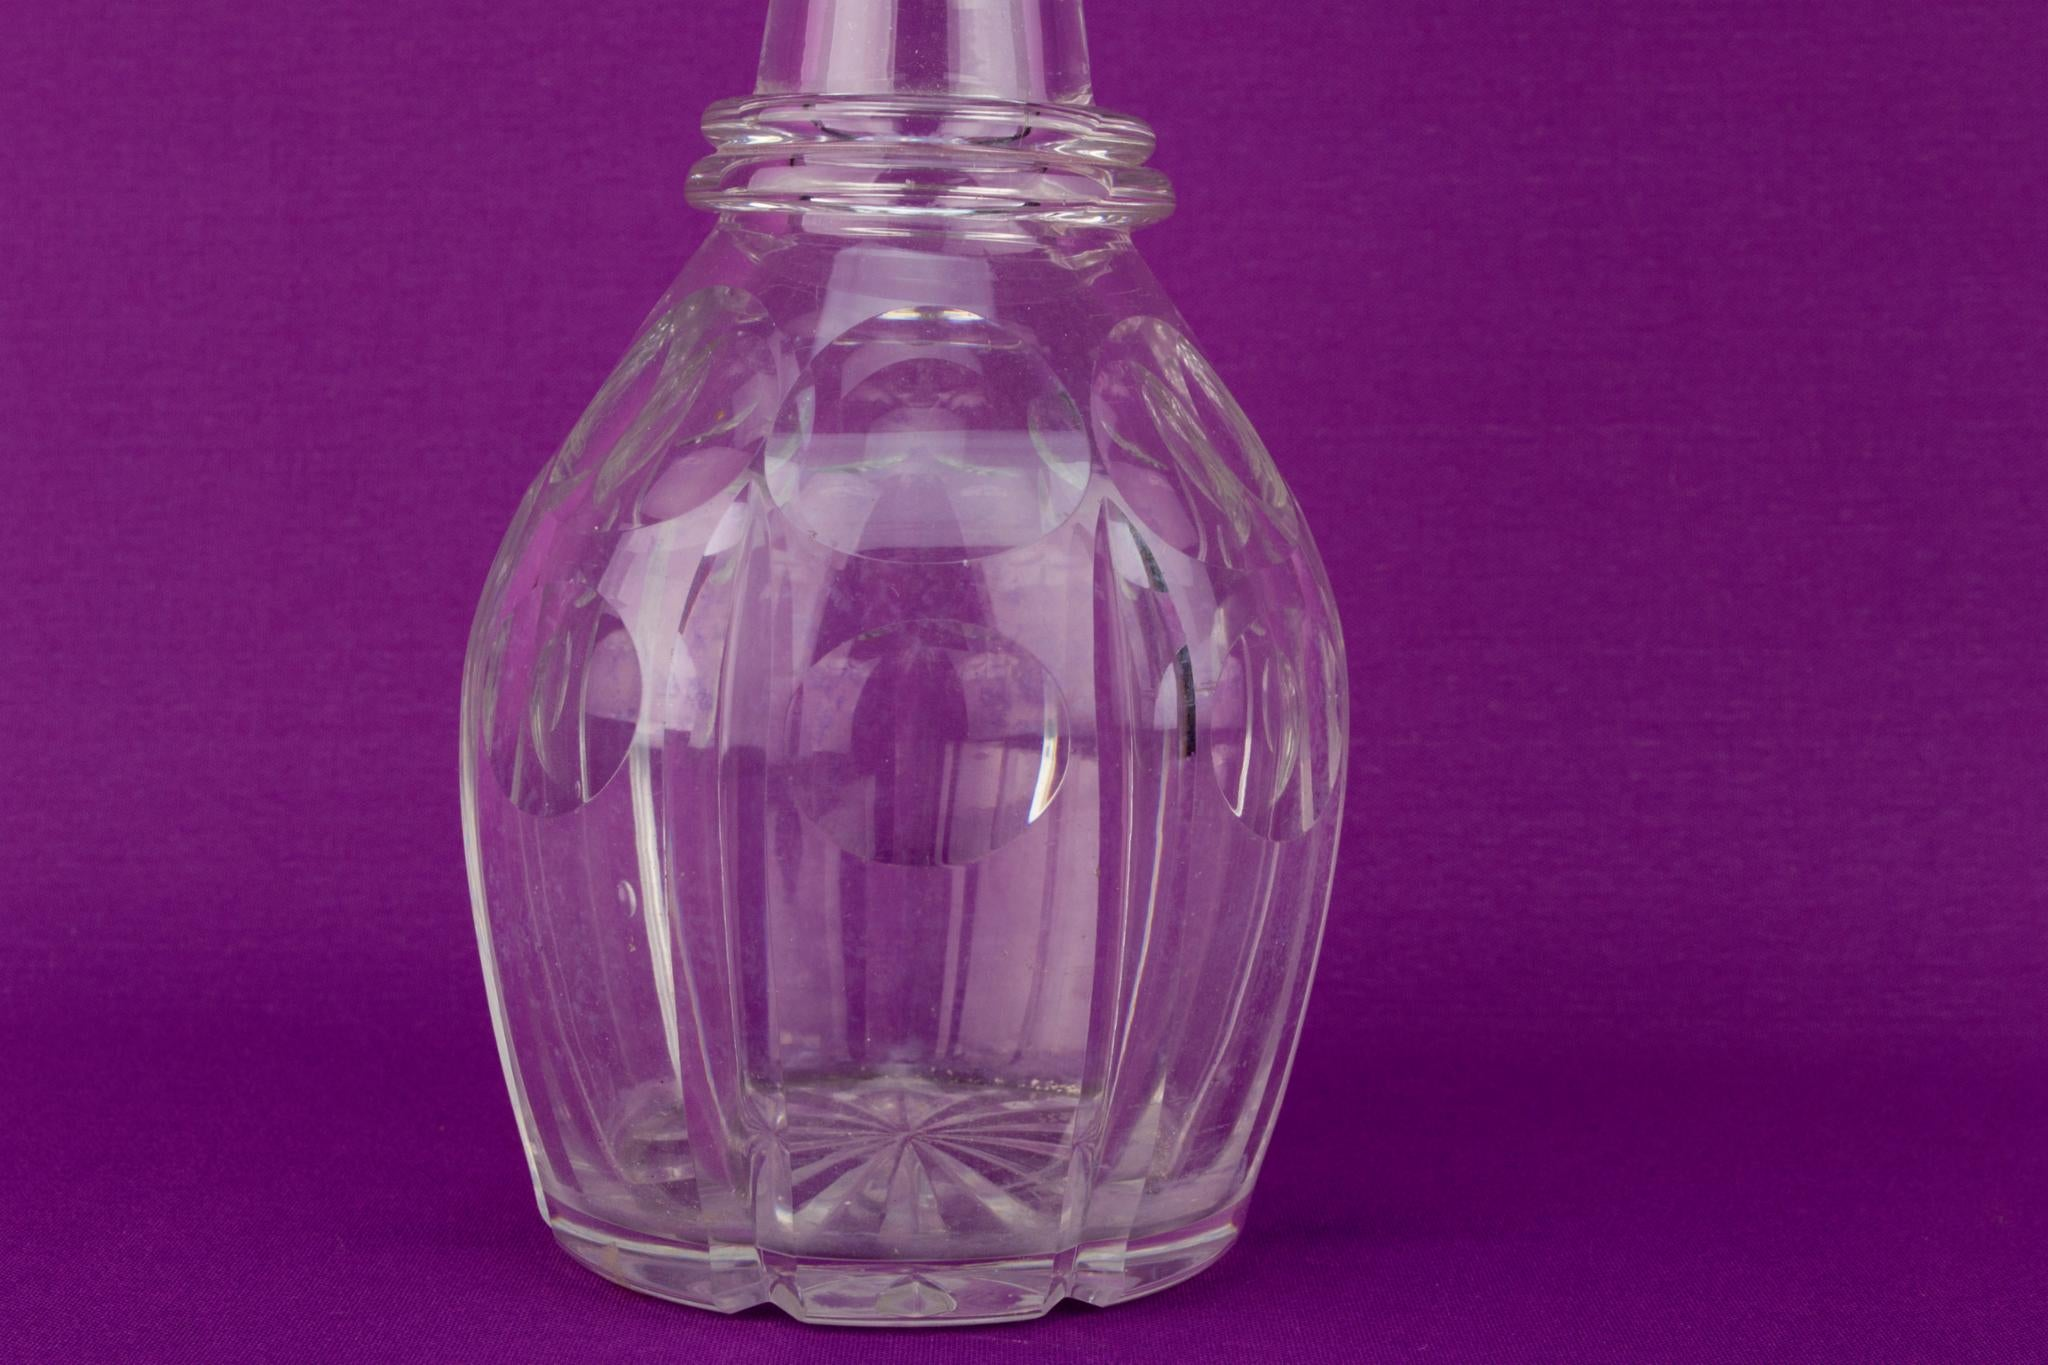 Cut Glass Barrel Decanter, English Mid 19th Century